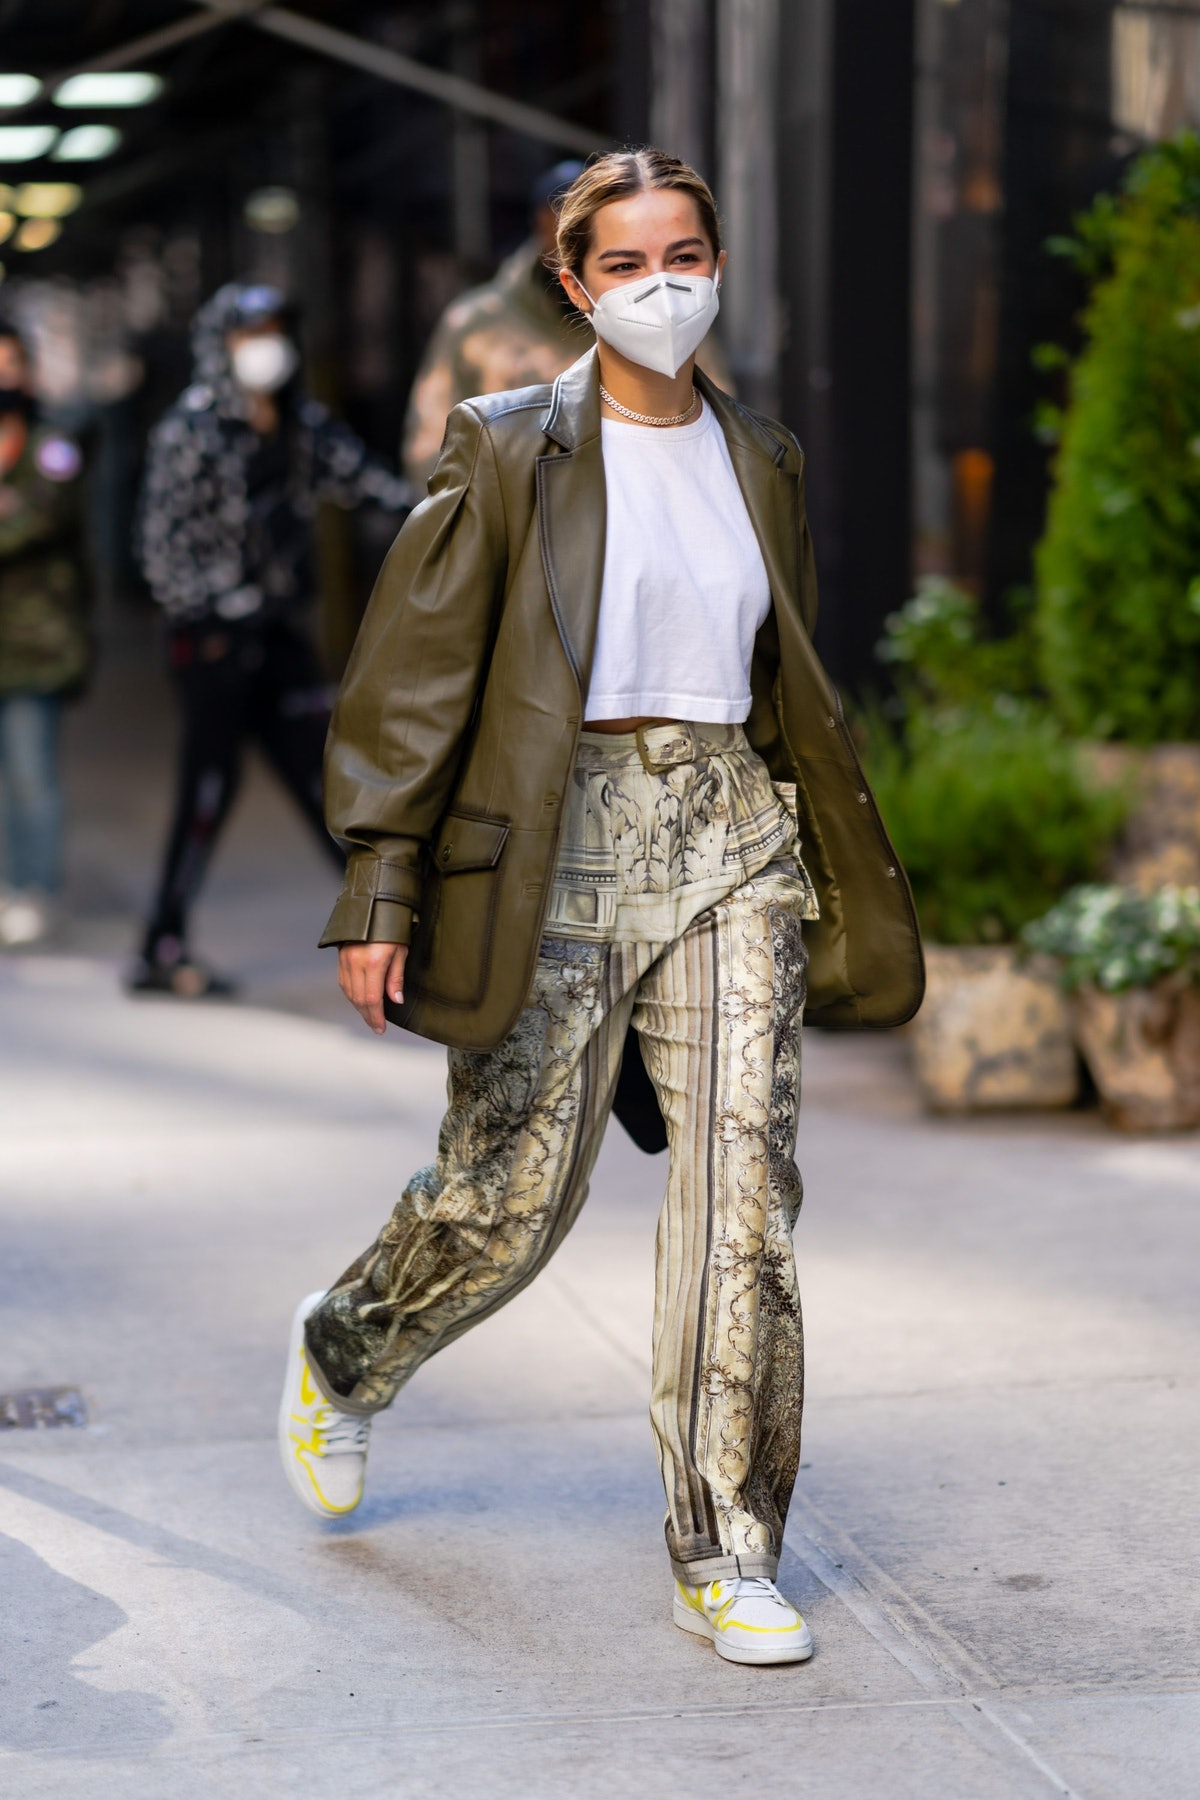 Addison Rae wears Baroque-print pants and a leather blazer on the street in one of her outfits to date.